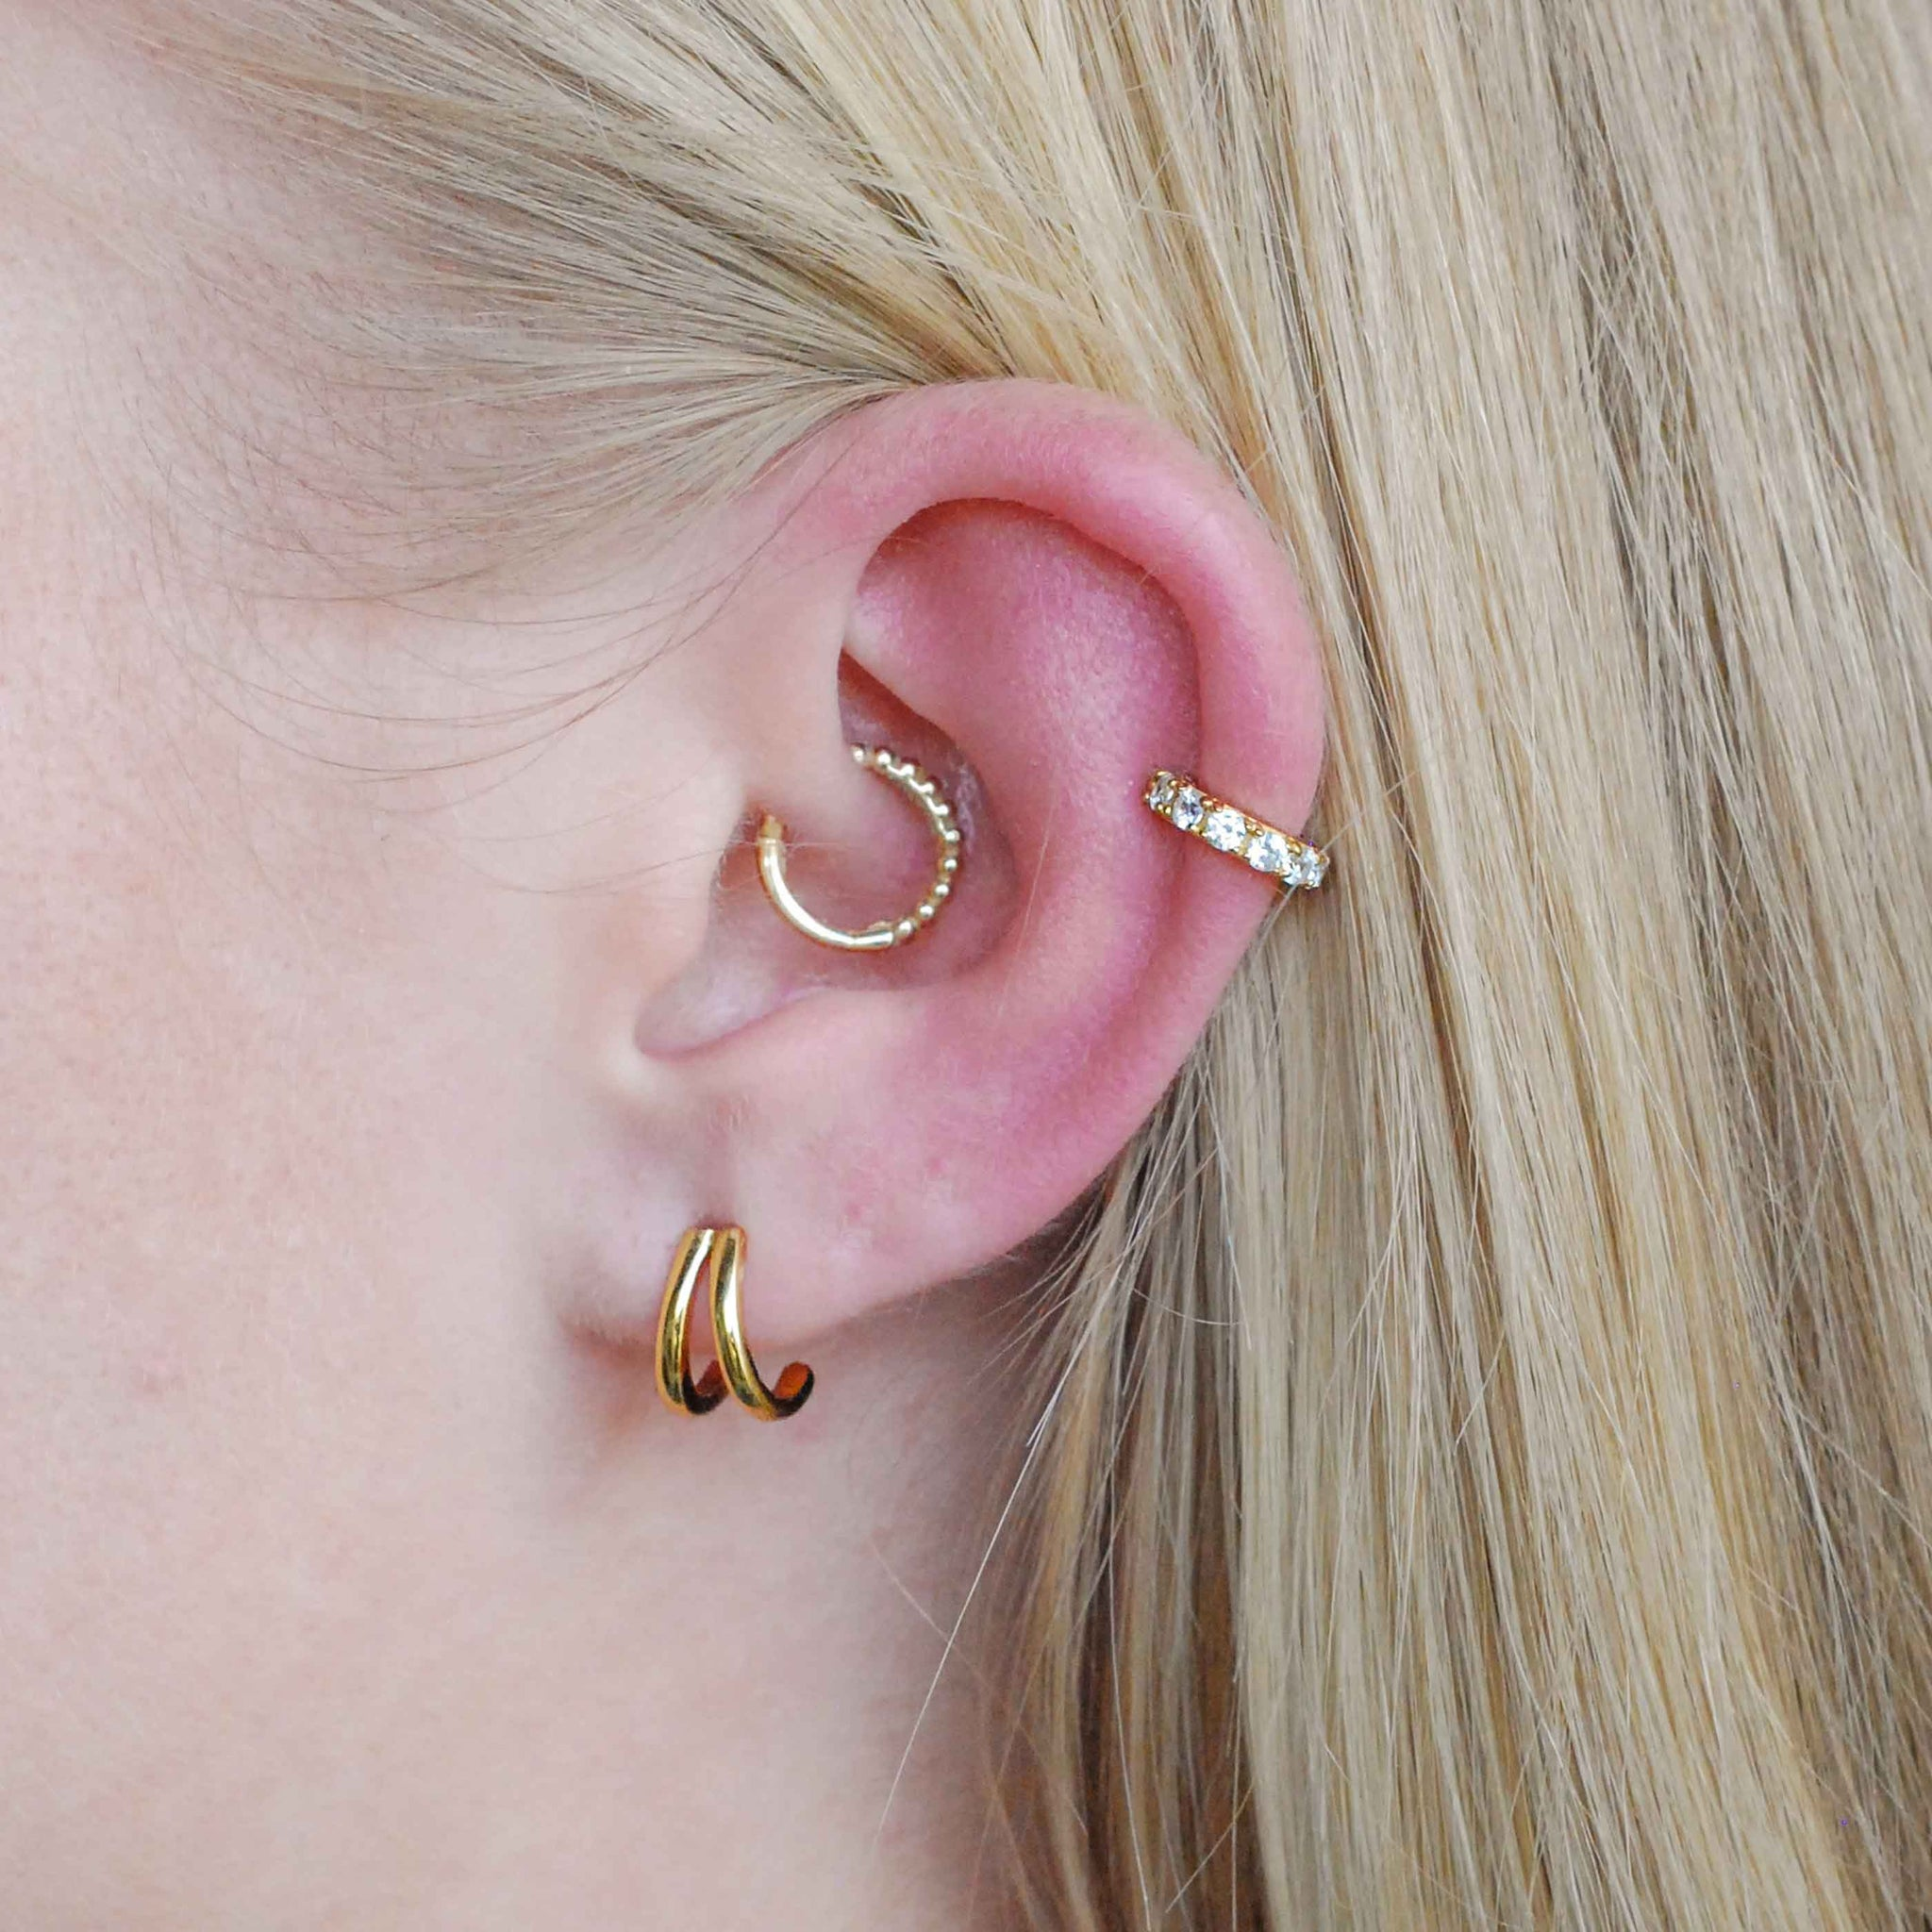 Double Bar Stud Earrings in Gold worn with mini wishbone ear cuff